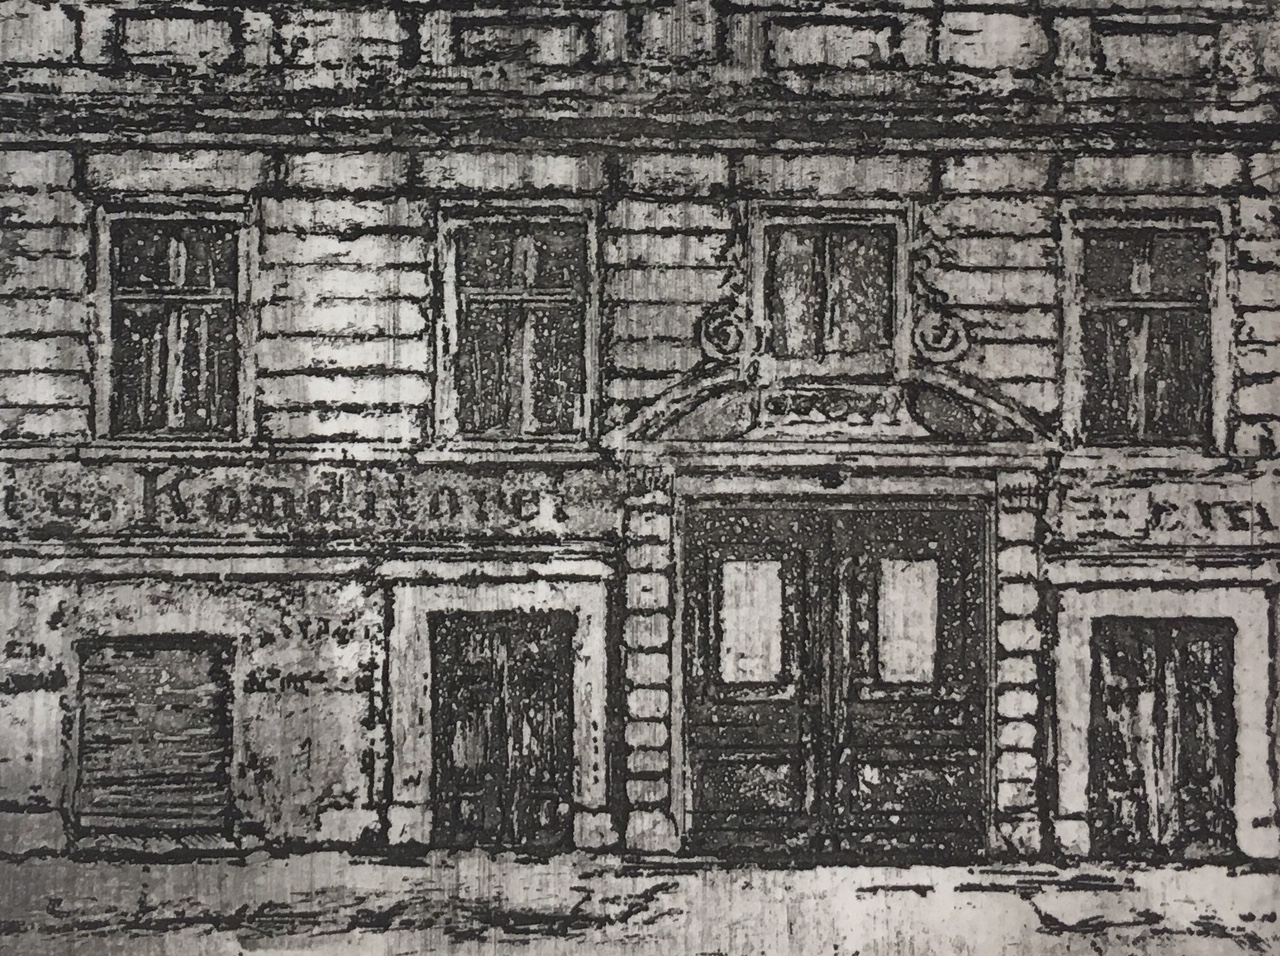 Monika Meiser | Small Pastry Shop | 1982 | aquatint | signed and dated | 7 x 9 cm